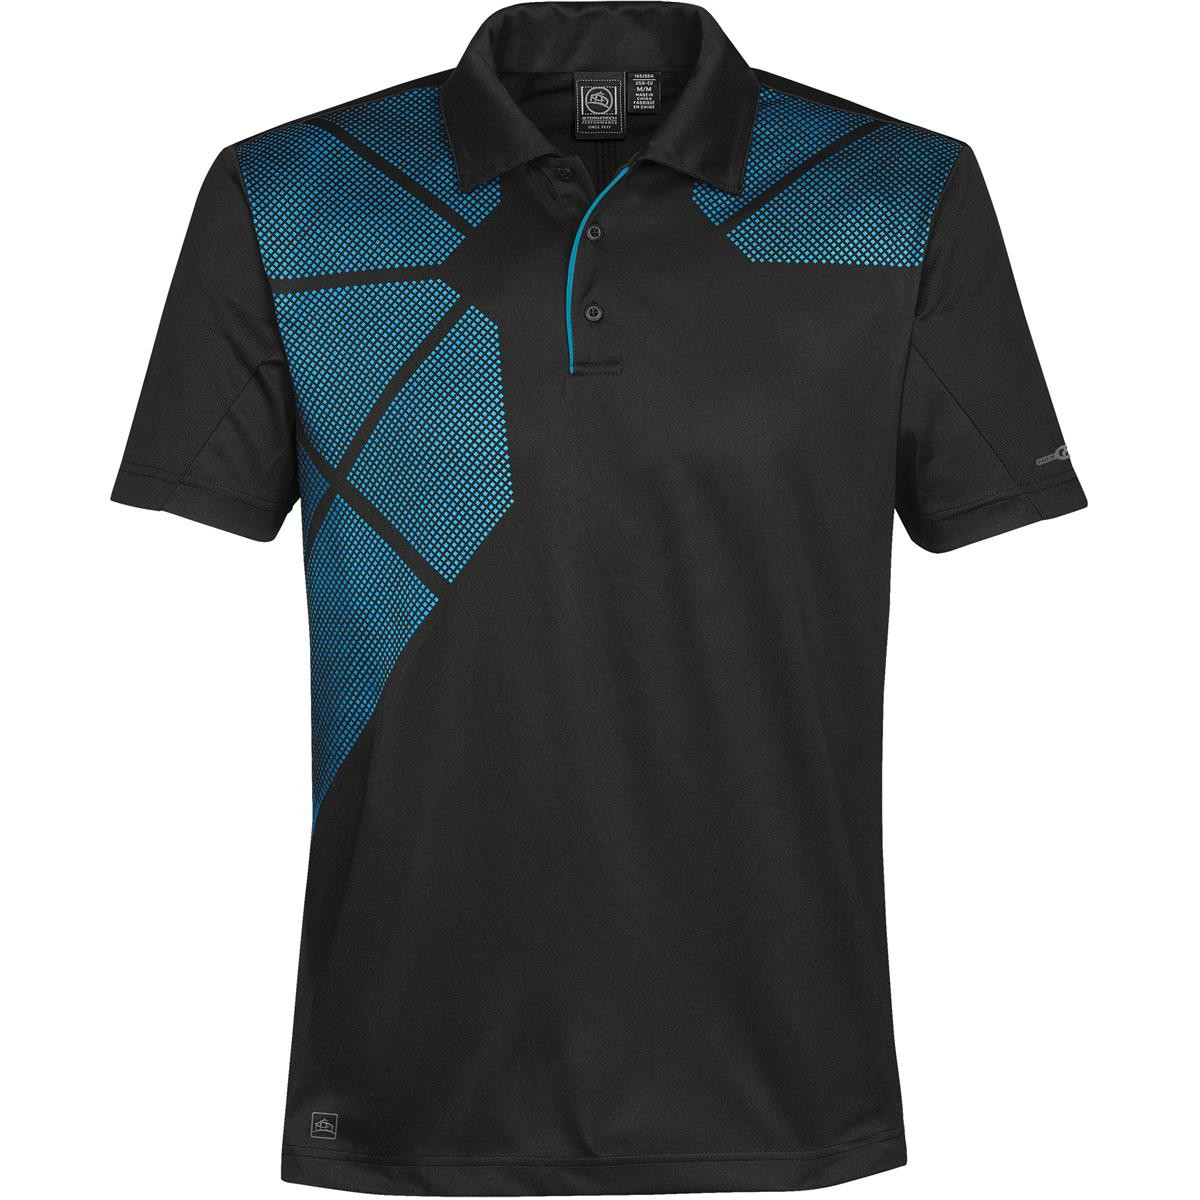 Prism Performance Polo